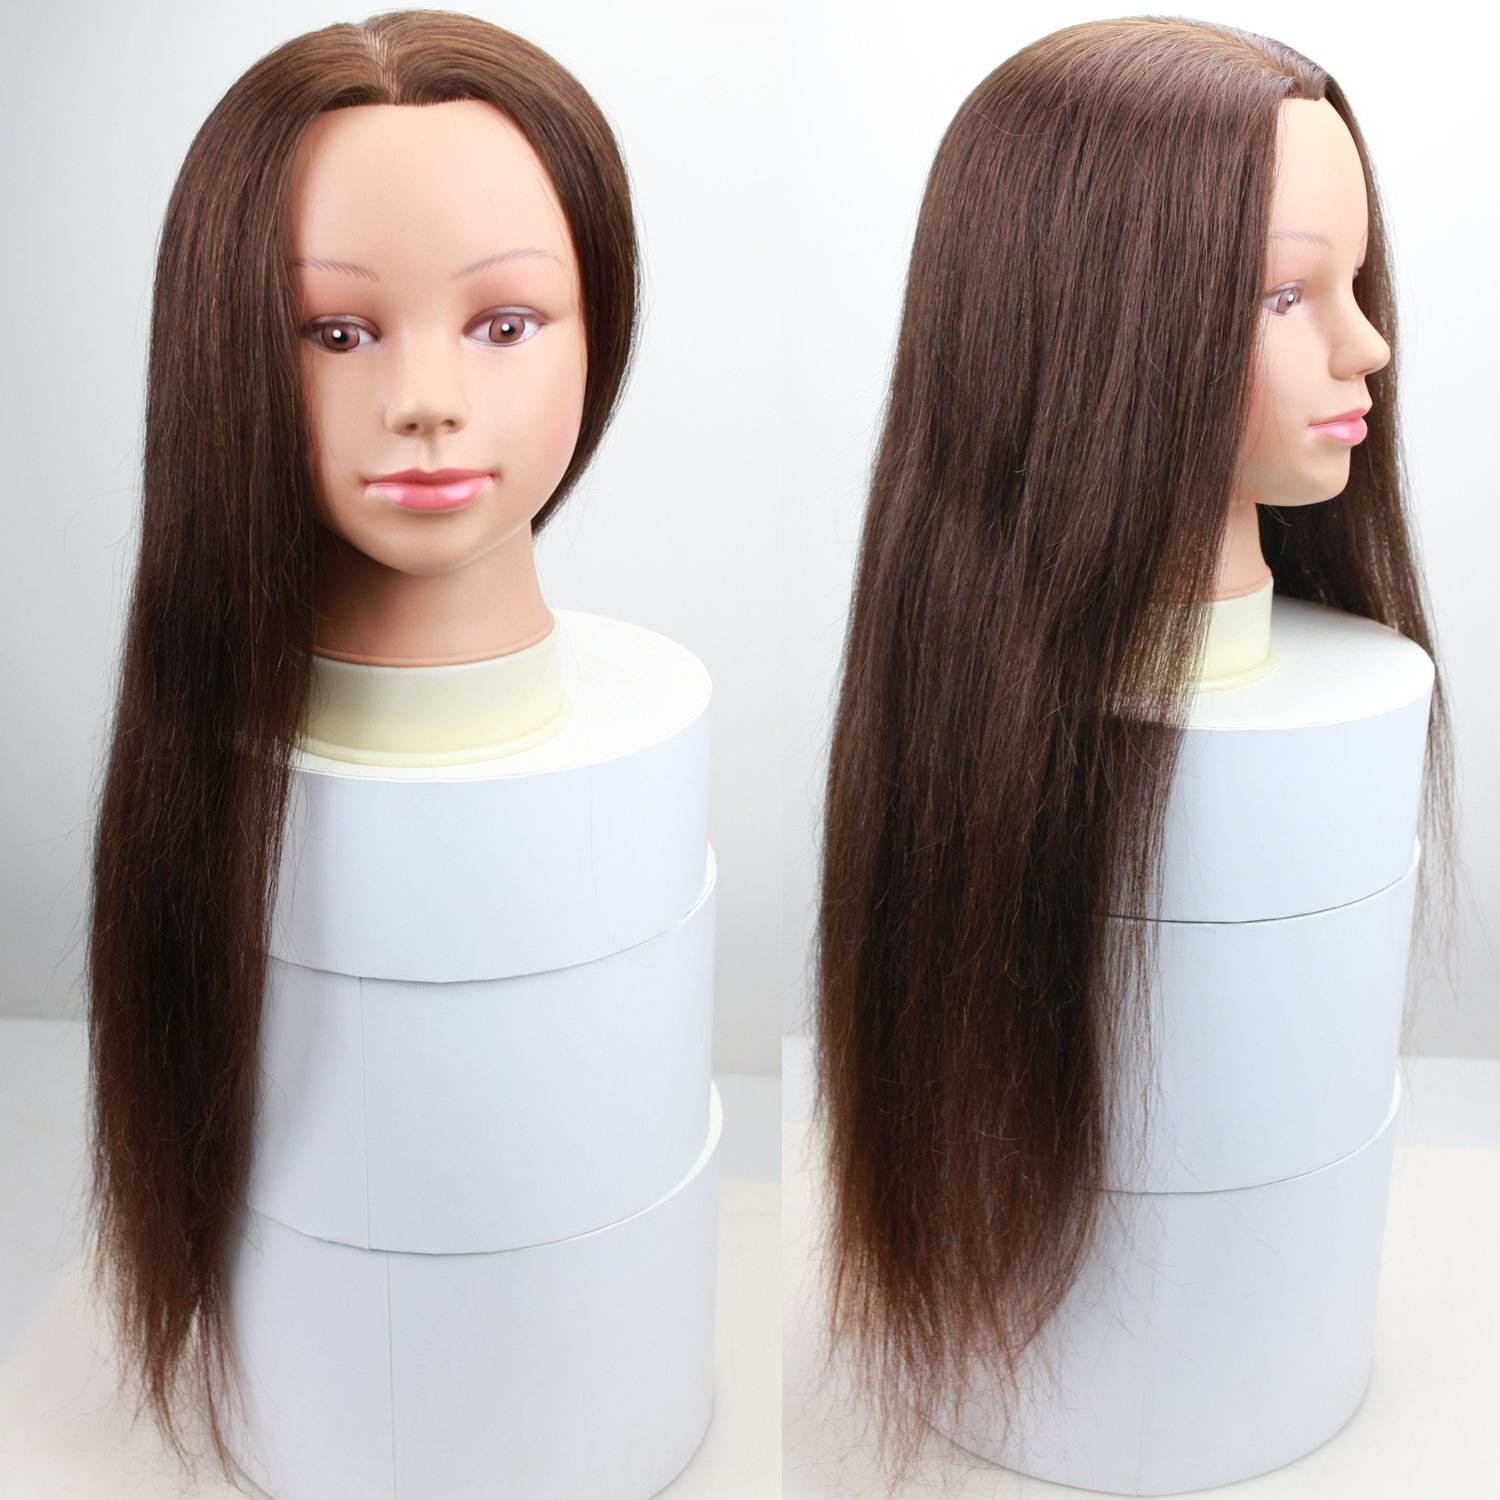 Dreambeauty 24 #4 Brown Color Hairdressing Training Head 100% Human Hair Mannequin Cosmetology Manikin Training Head with Human hair Styling Doll Head Qingdao Feiyang Hair Co. Ltd